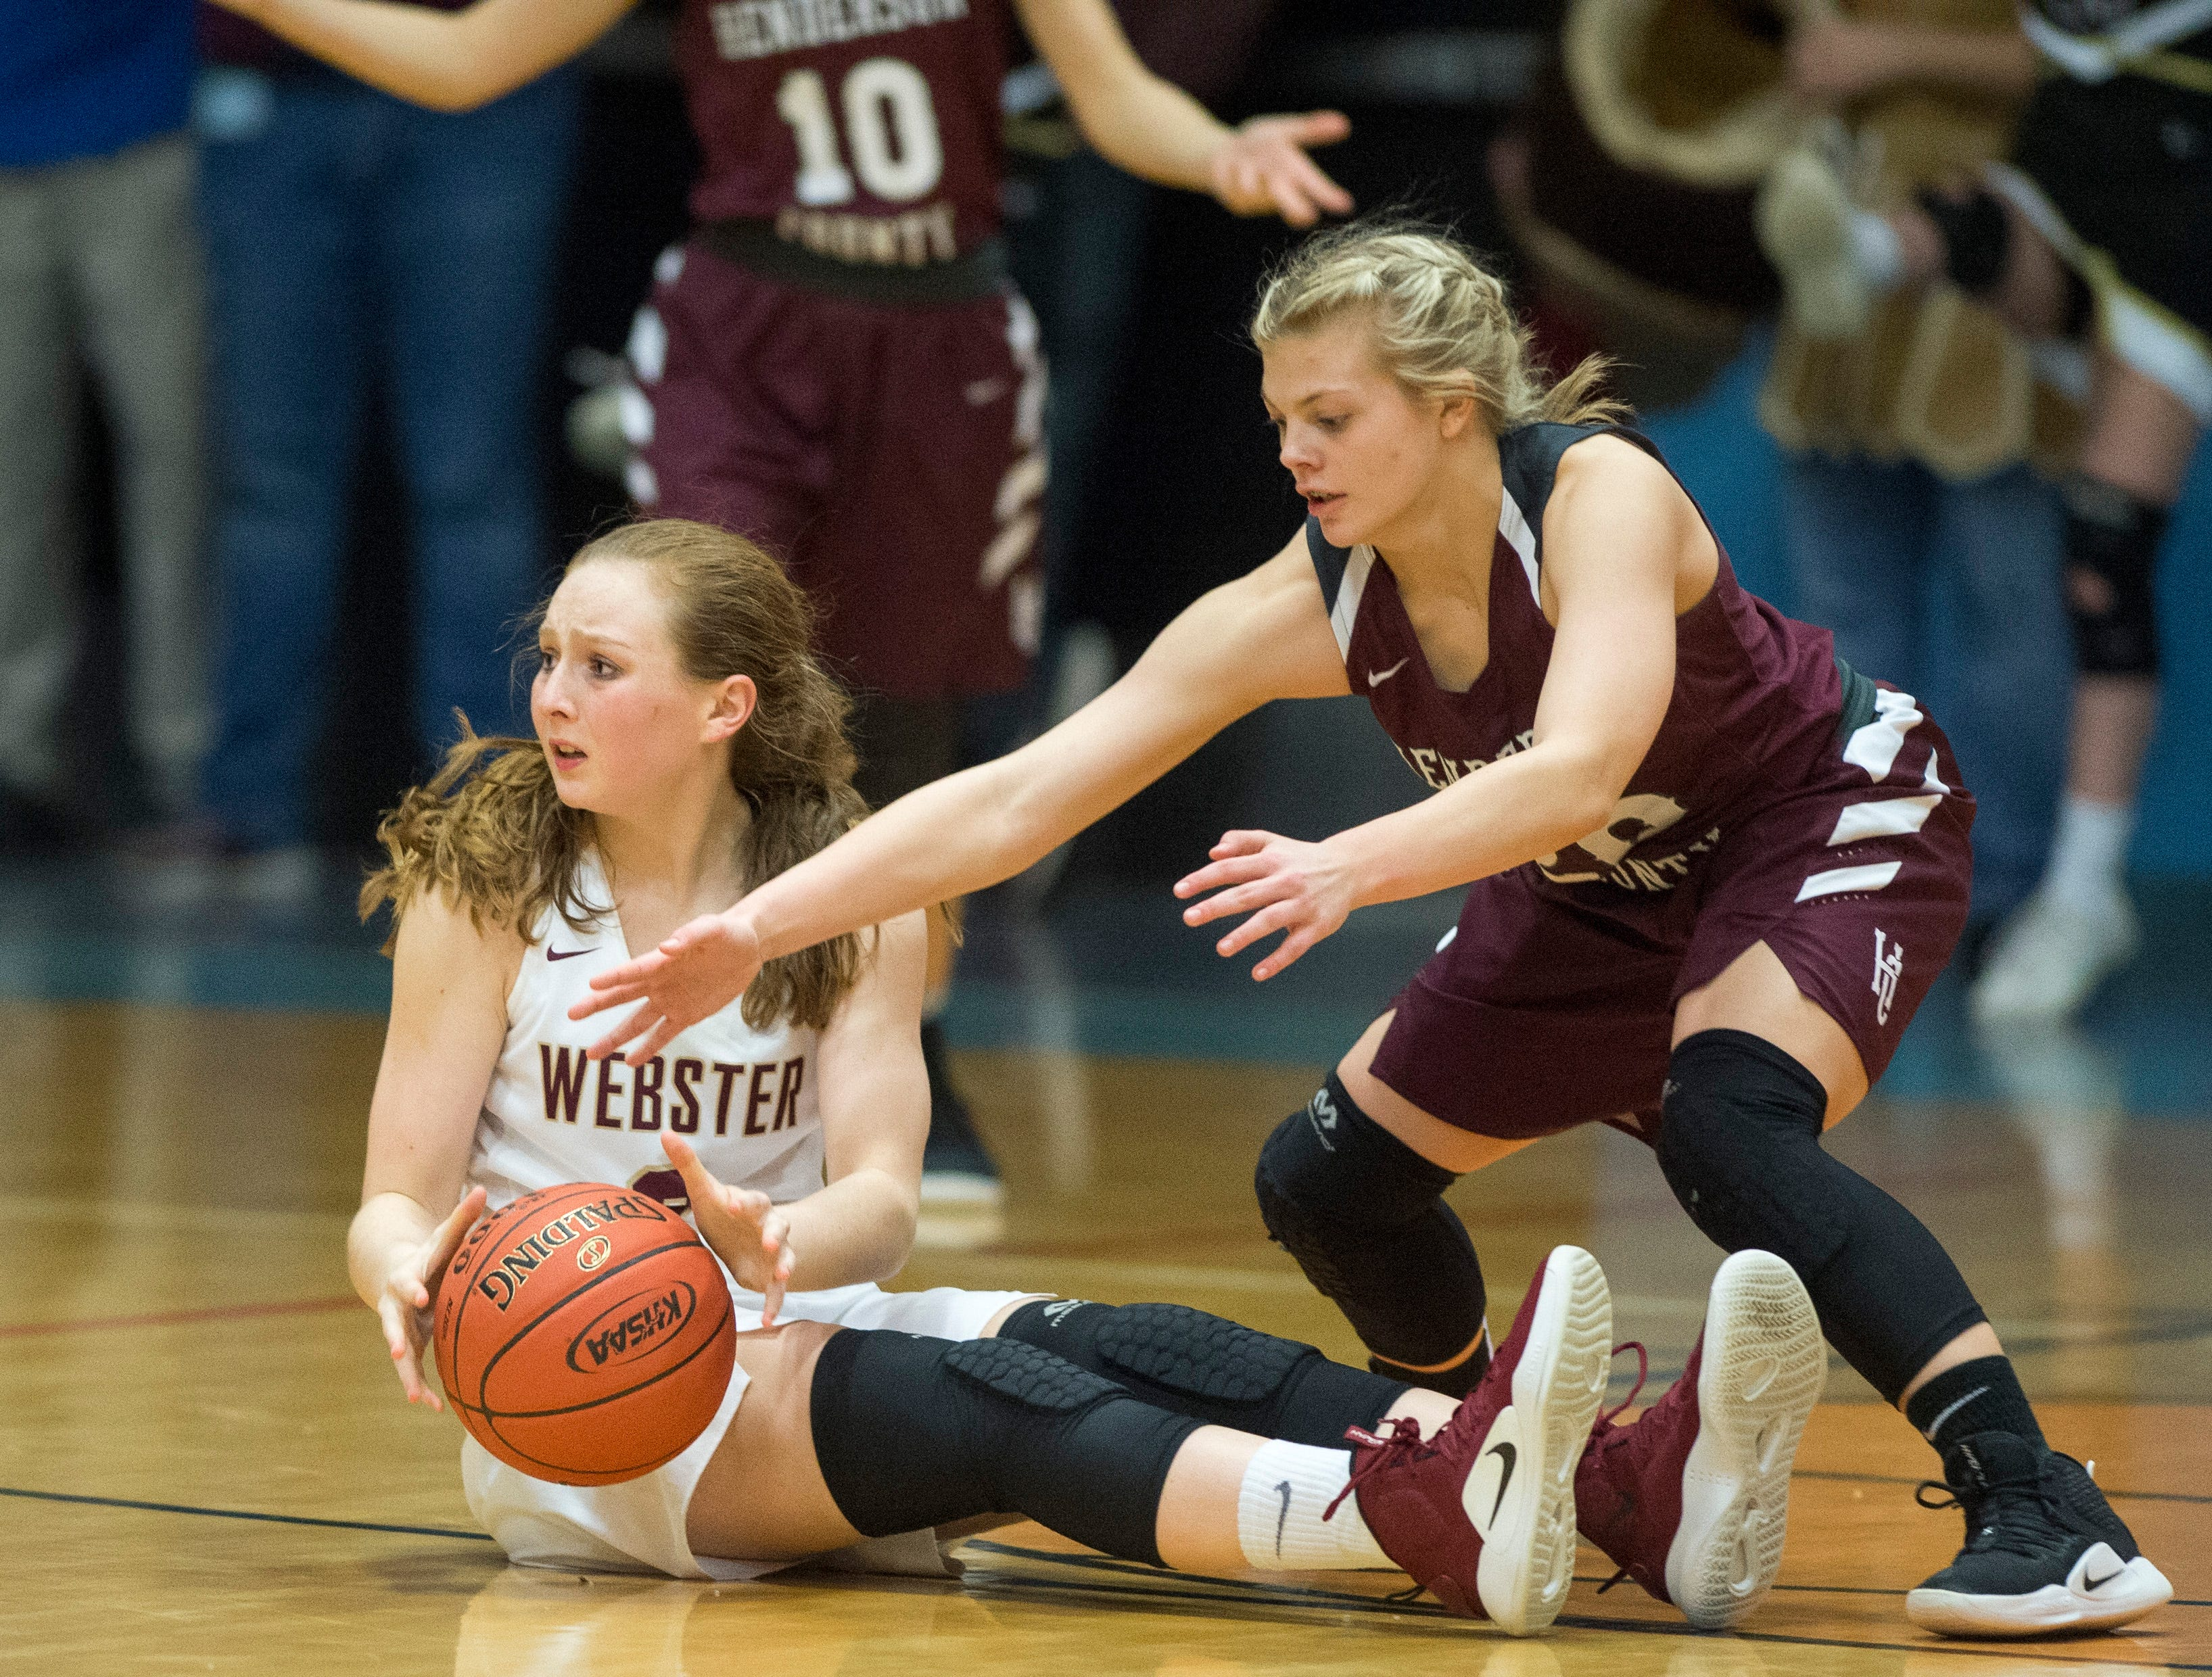 Webster County's Marissa Austin (2)  struggles to find an open teammate after falling to the floor during the 2019 Sixth District championship game against the Henderson County Lady Colonels at Union County High School Thursday, Feb. 21, 2019.